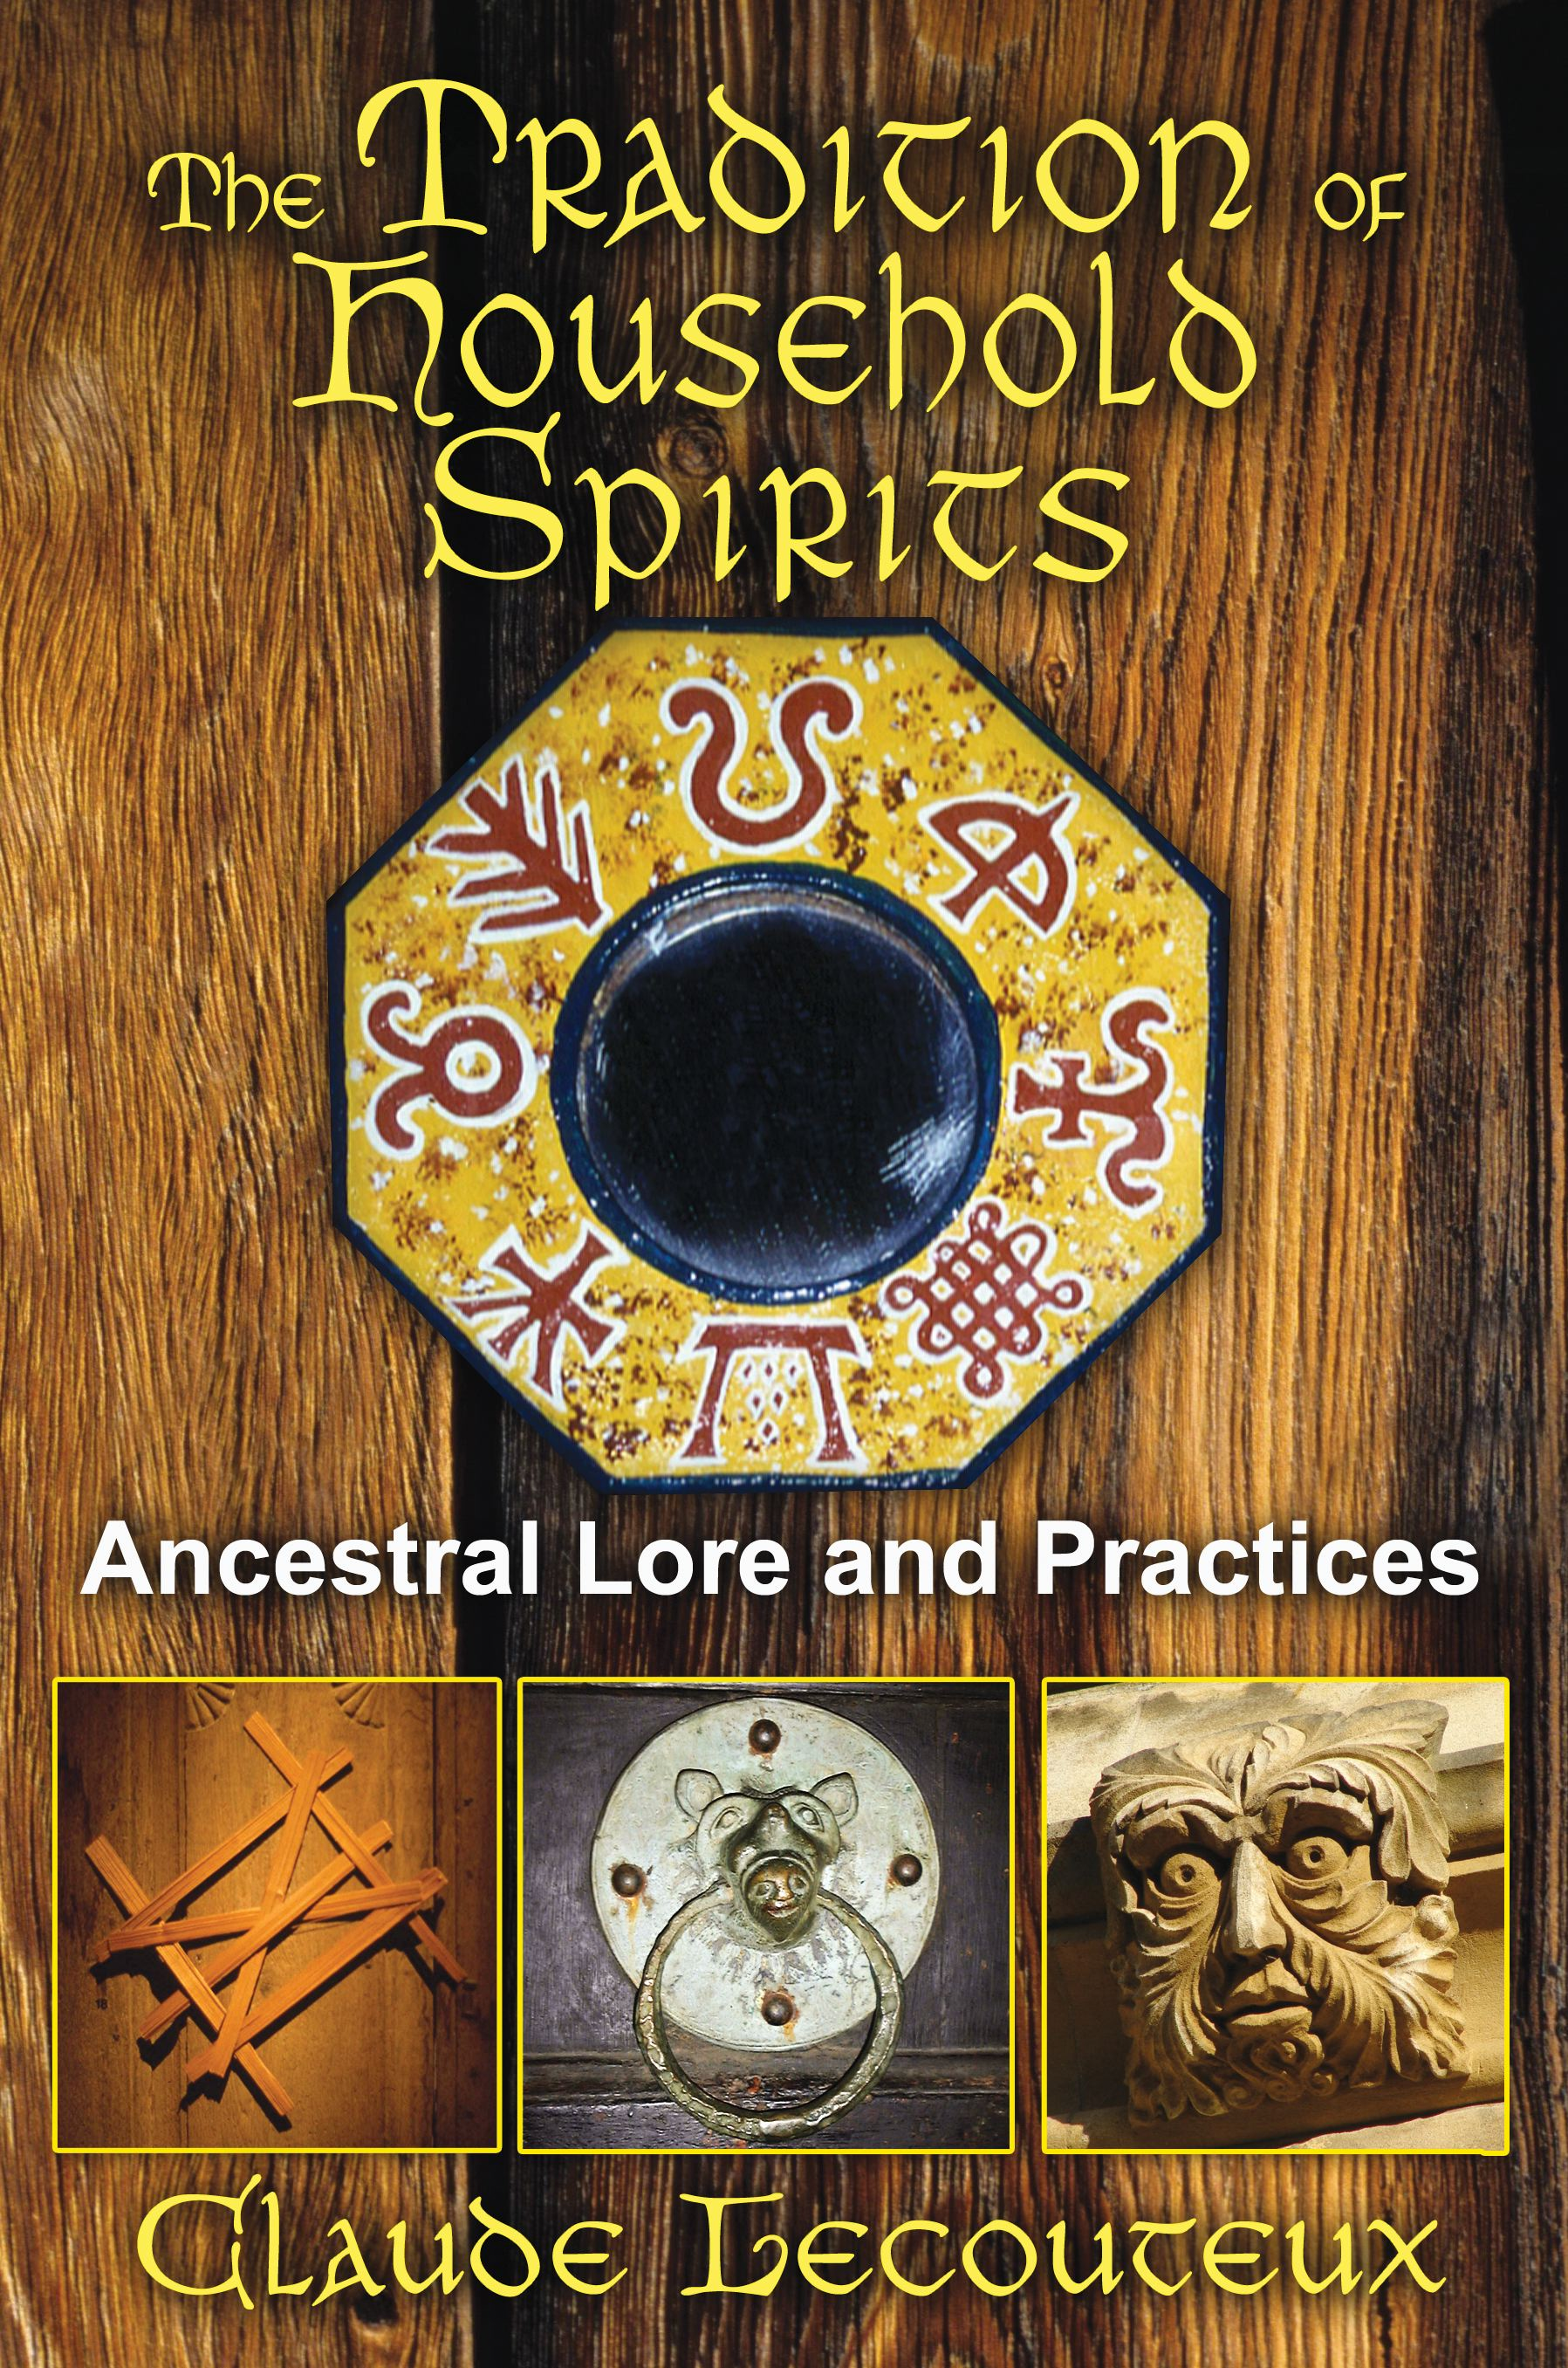 The tradition of household spirits 9781620551059 hr